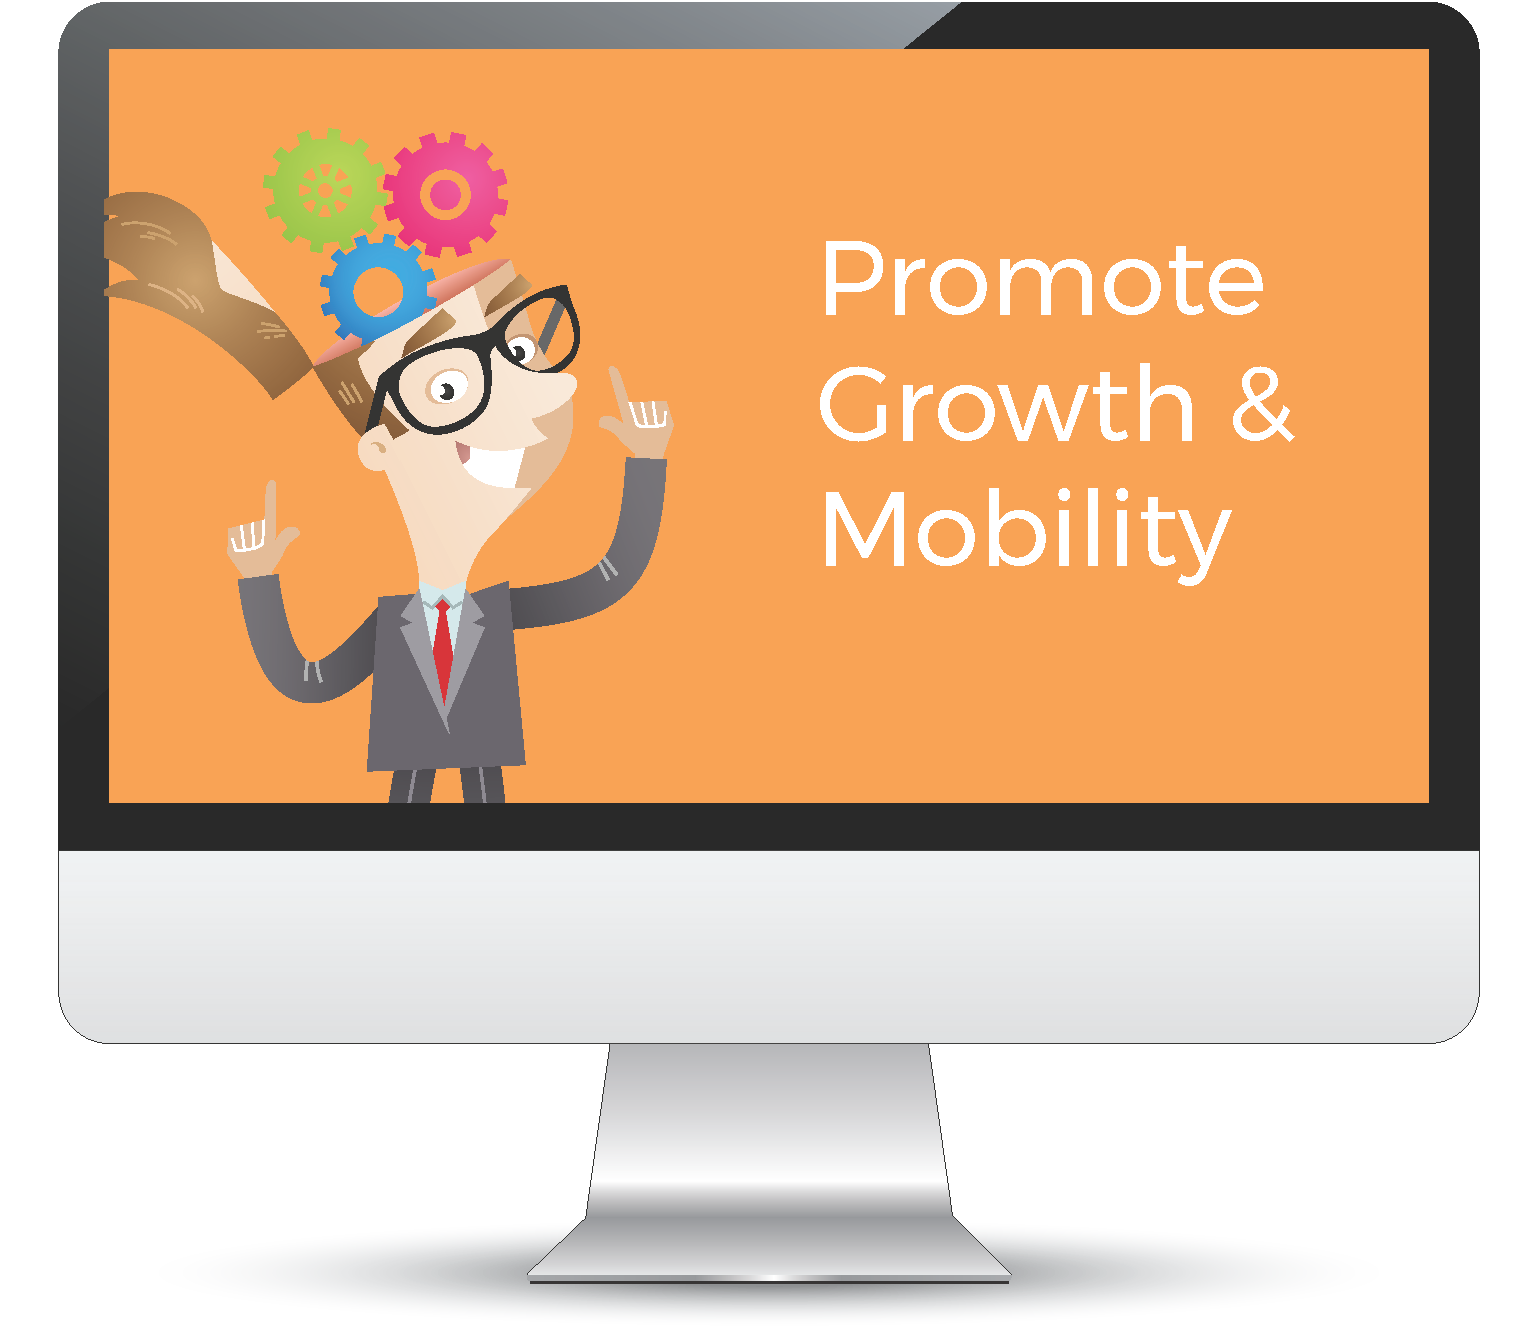 Growth and Mobility